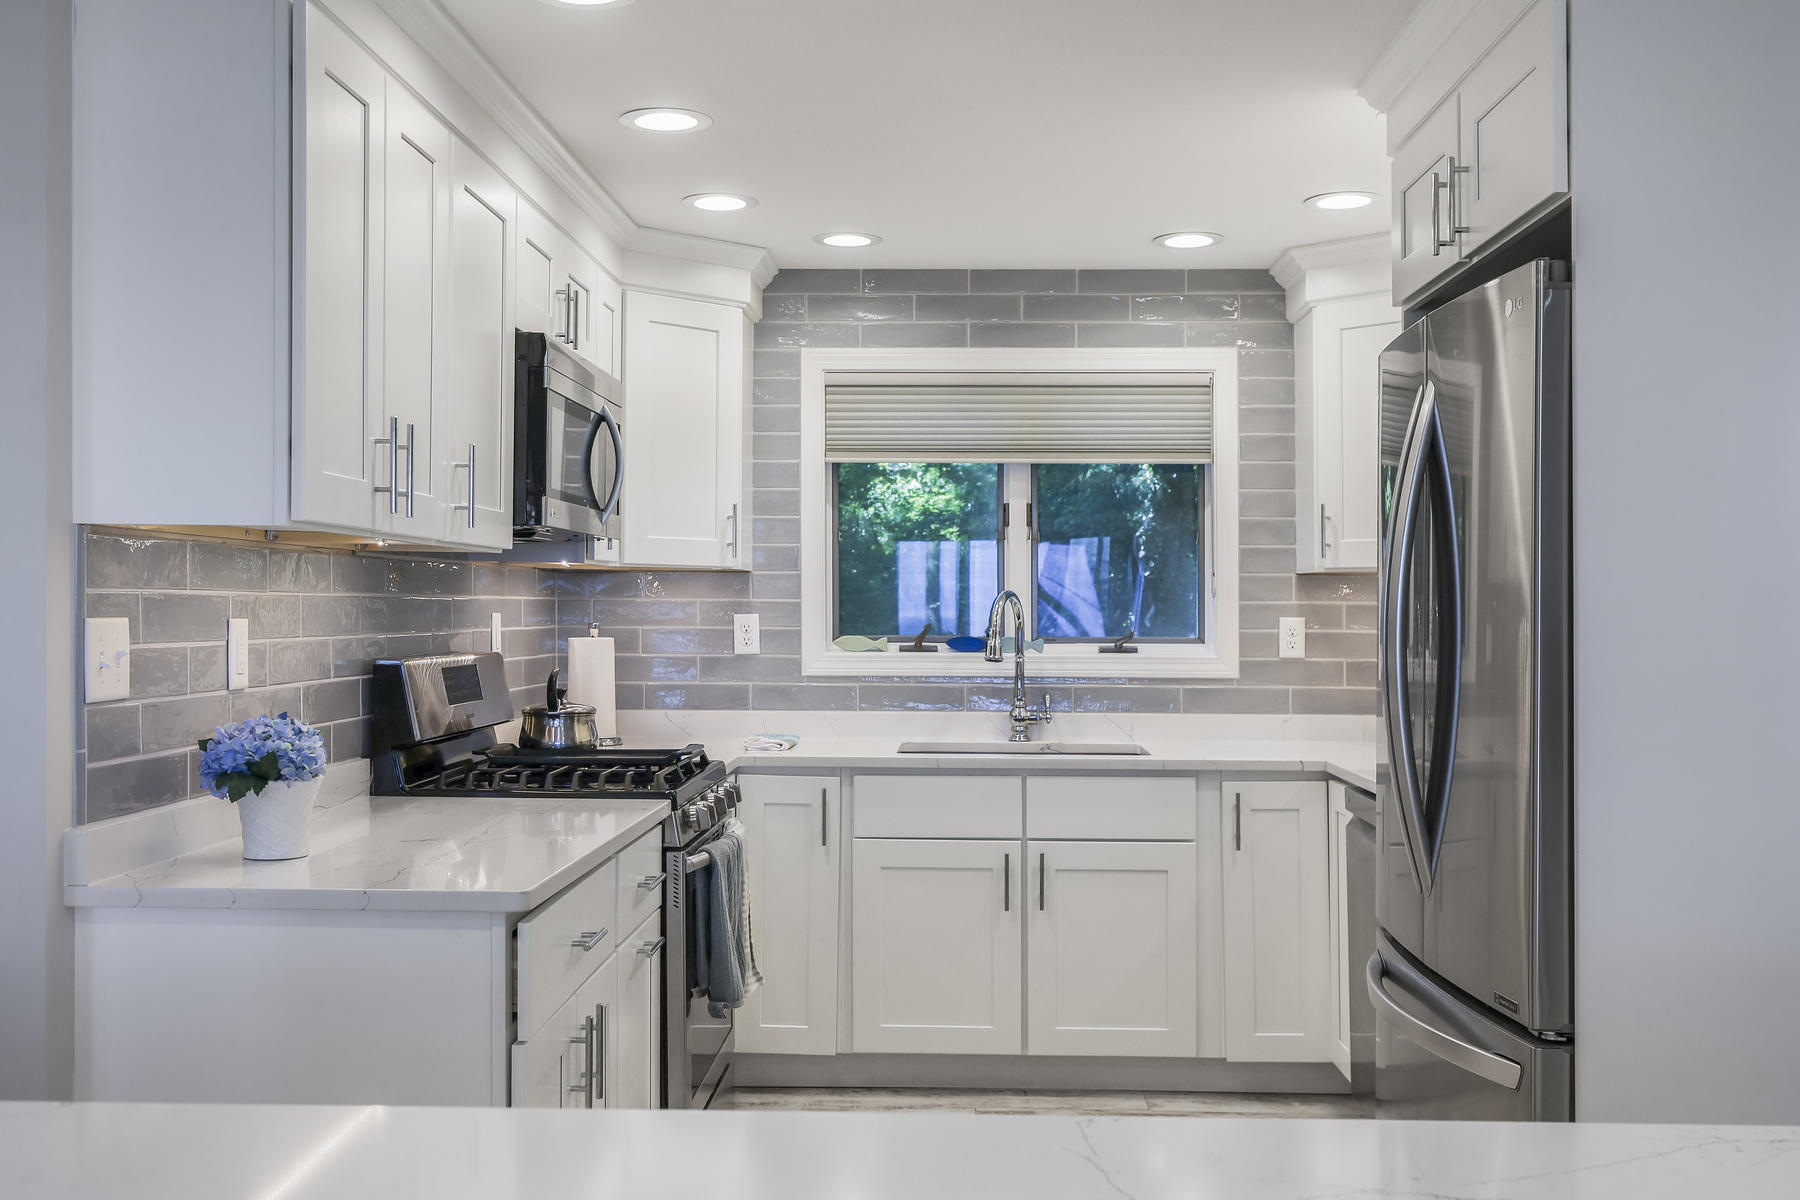 613 South Orleans Road, Orleans, MA photo 18